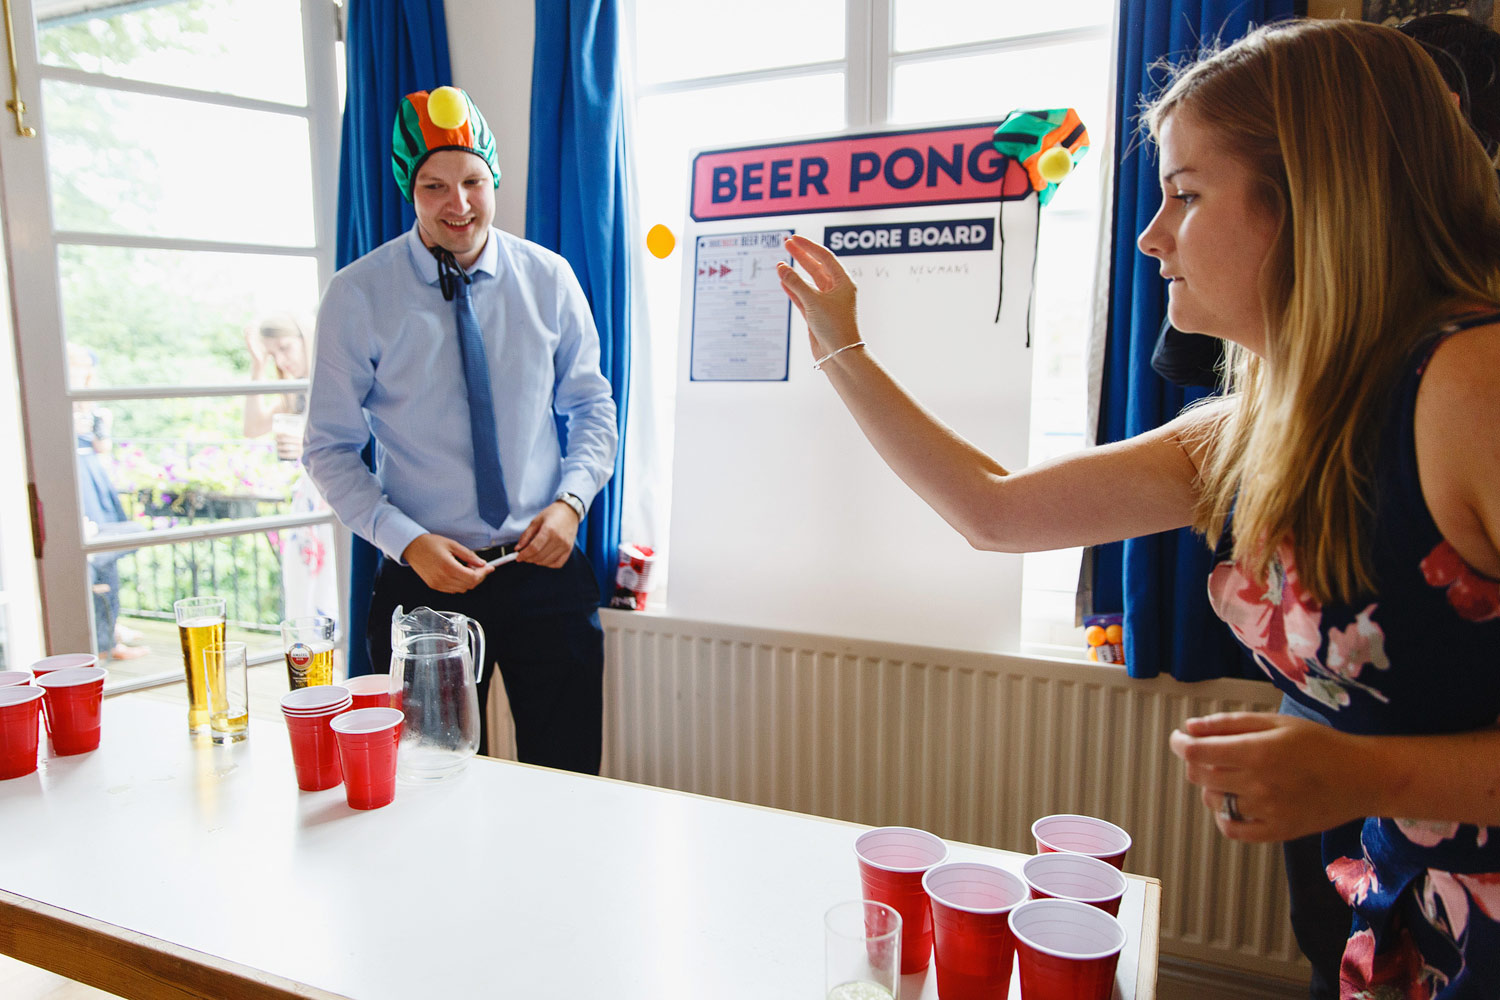 Guests play beer pong at the wedding at Twickenham Rowing Club - London wedding photographer